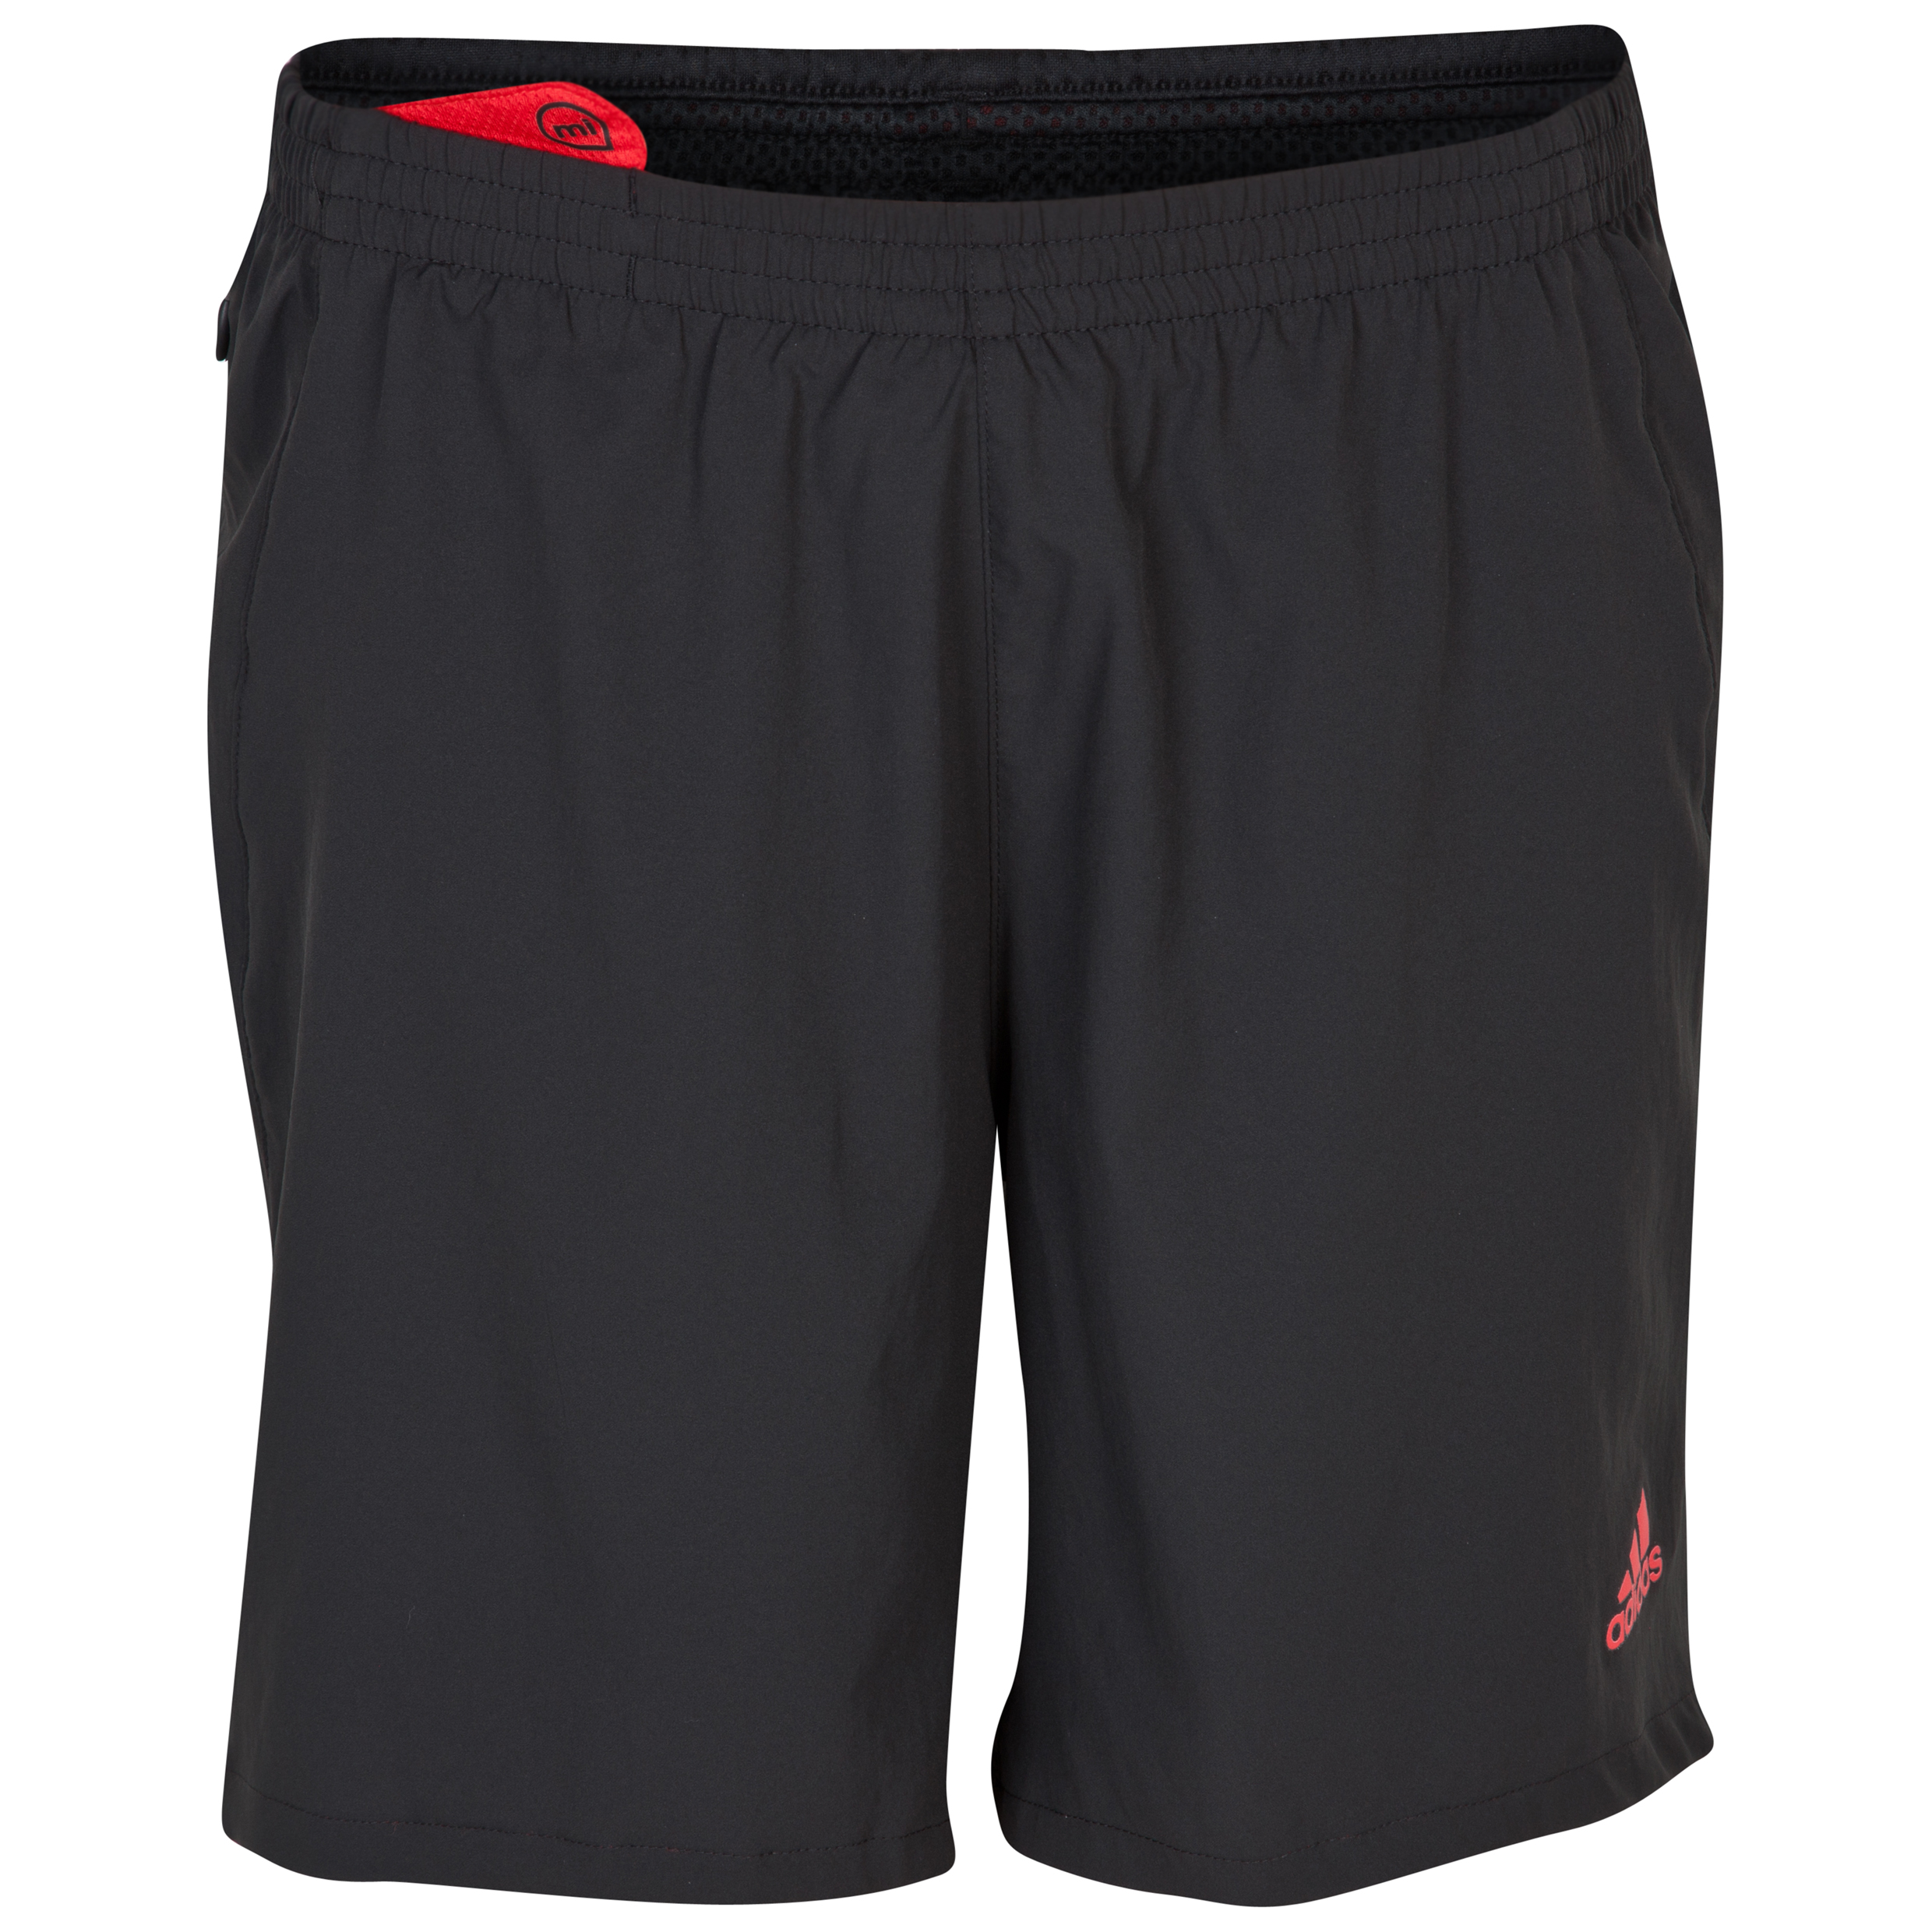 Adidas Supernova 7 Inch Shorts - Black/Vivid Red